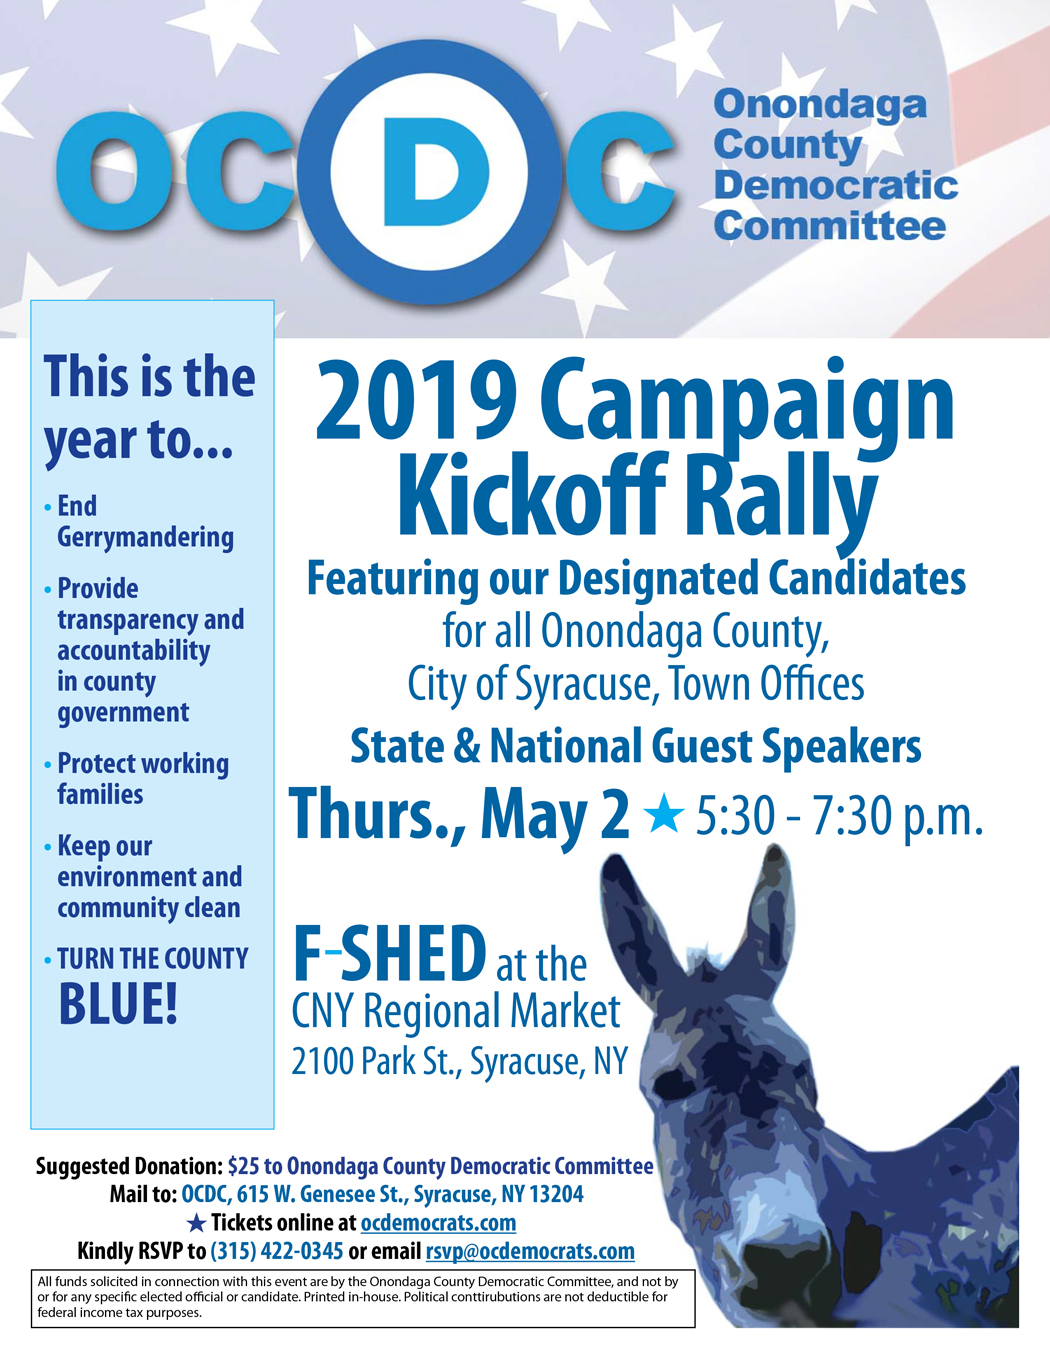 OCDC 2019 Campaign Kickoff Rally - F Shed at the Market - Thursday, May 2, 2019 - 5:30-7:30 p.m.